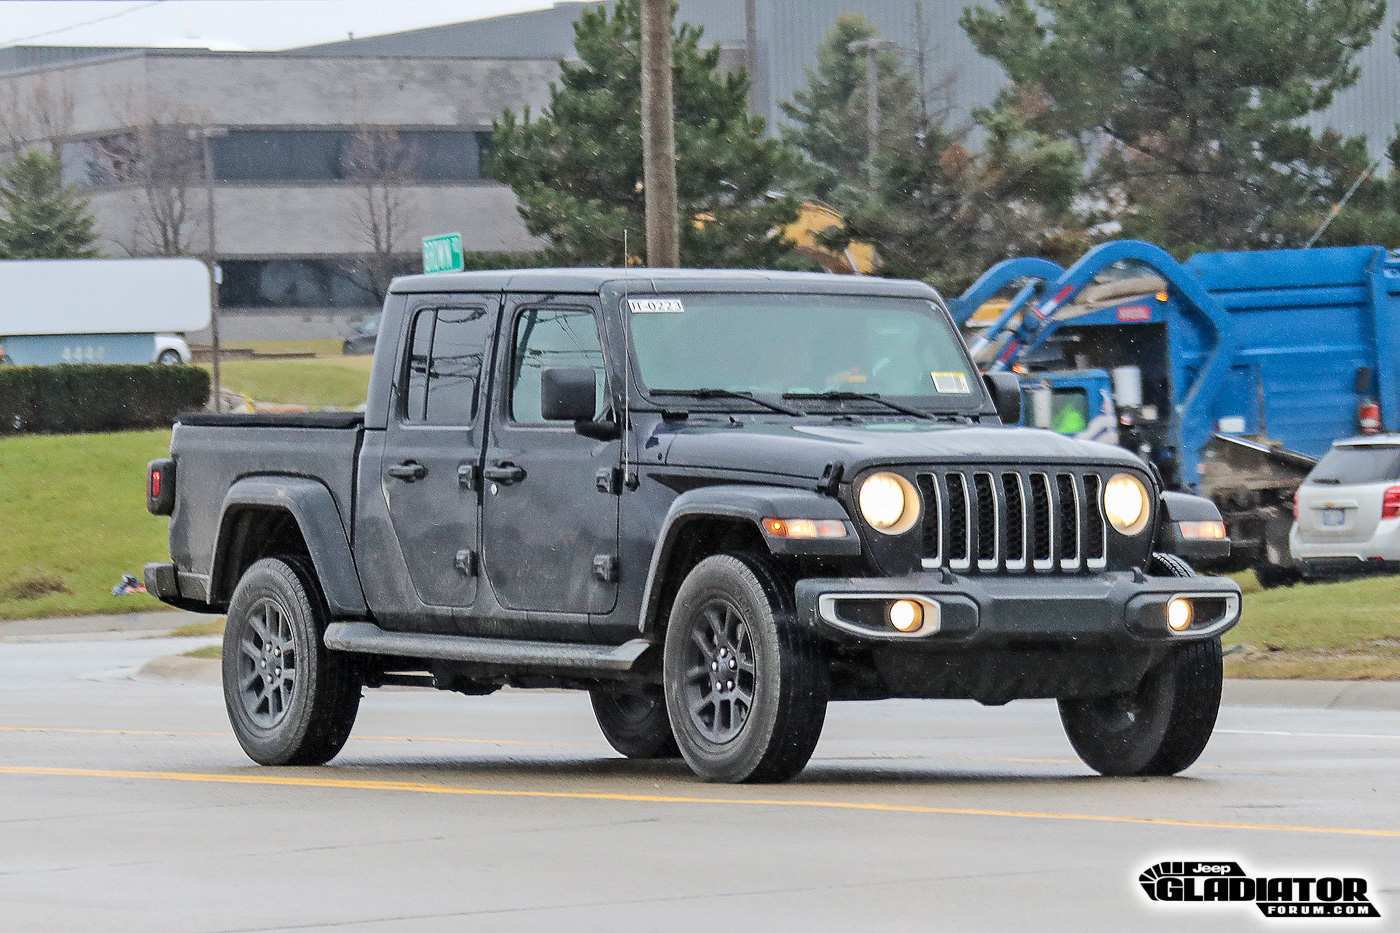 83 All New 2020 Jeep Gladiator Overland Youtube Speed Test for 2020 Jeep Gladiator Overland Youtube